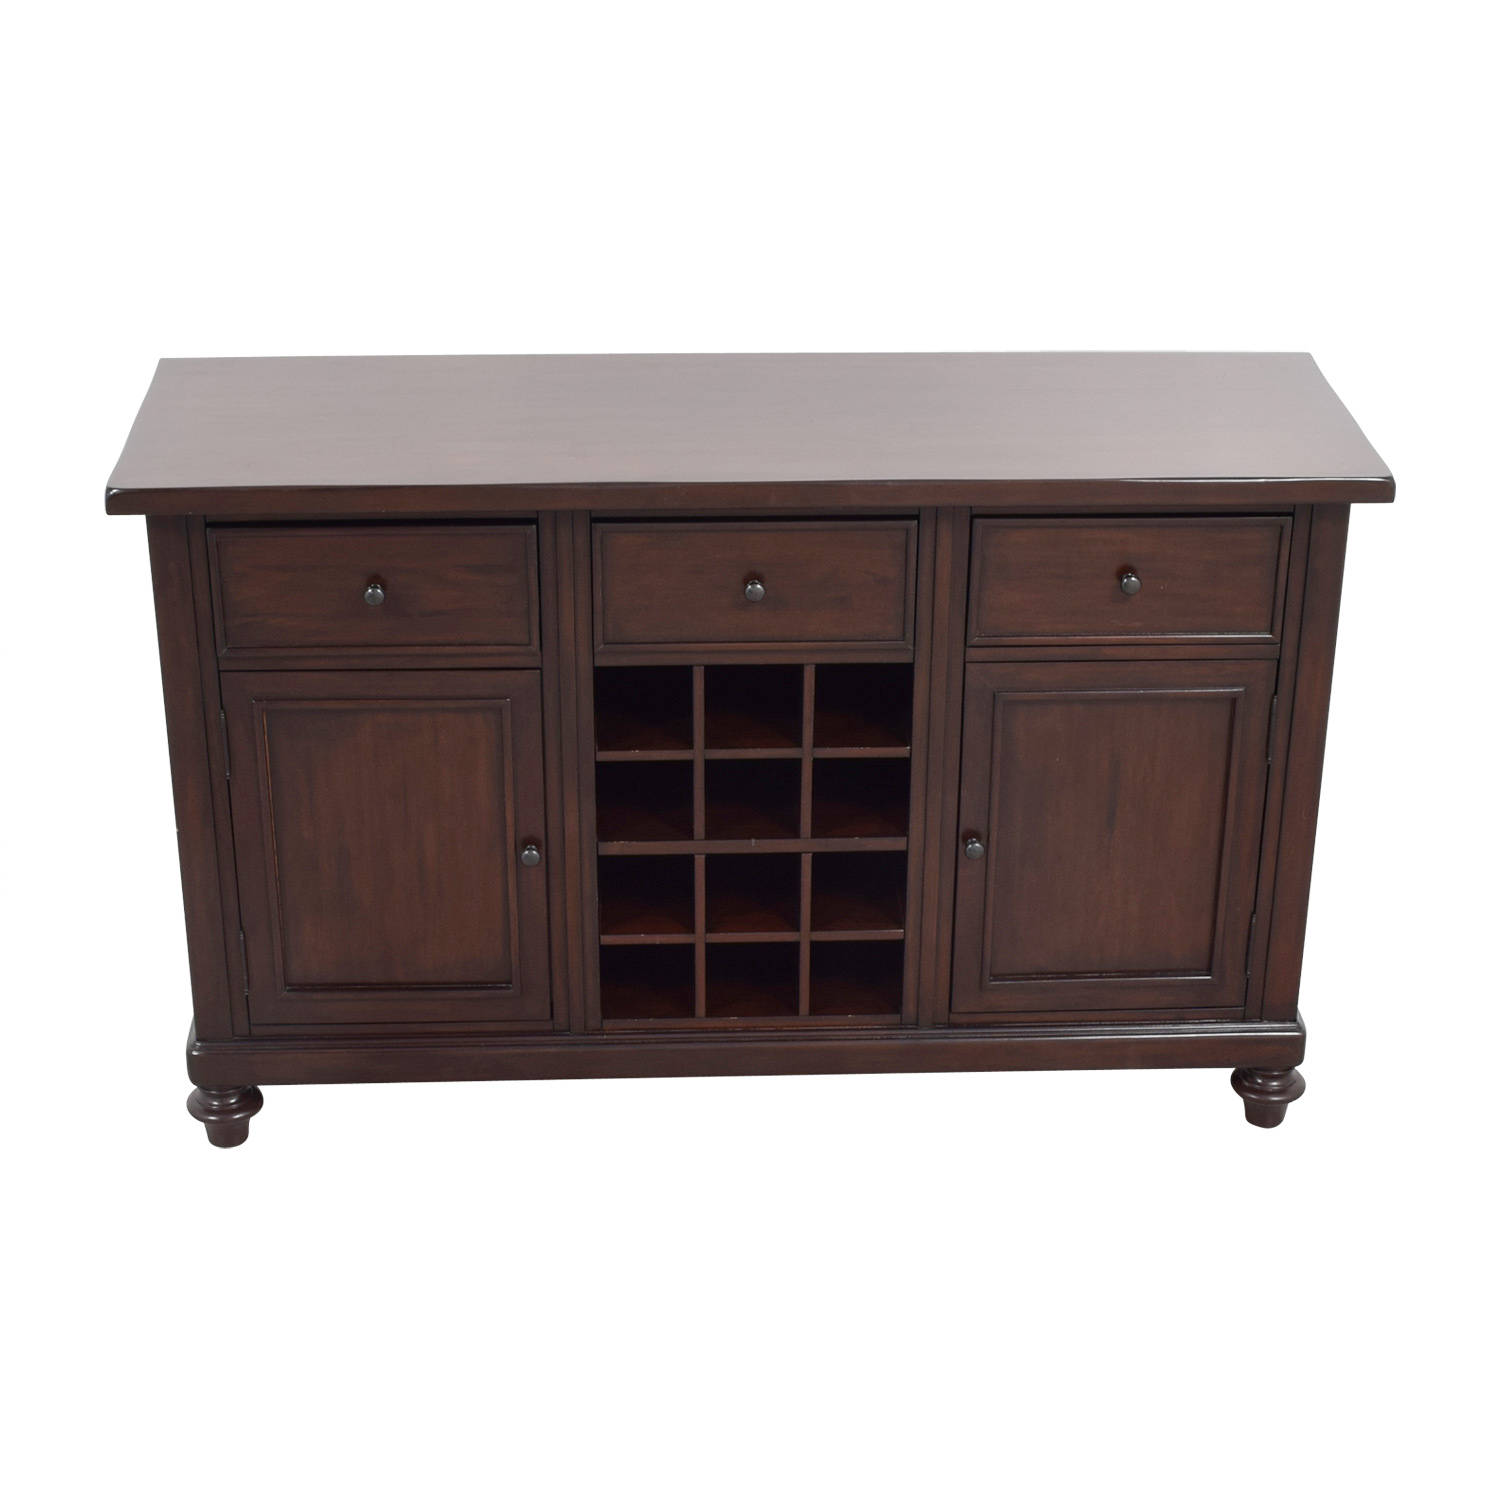 Pottery Barn Pottery Barn Wood Bar with Wine Storage Cabinets & Sideboards